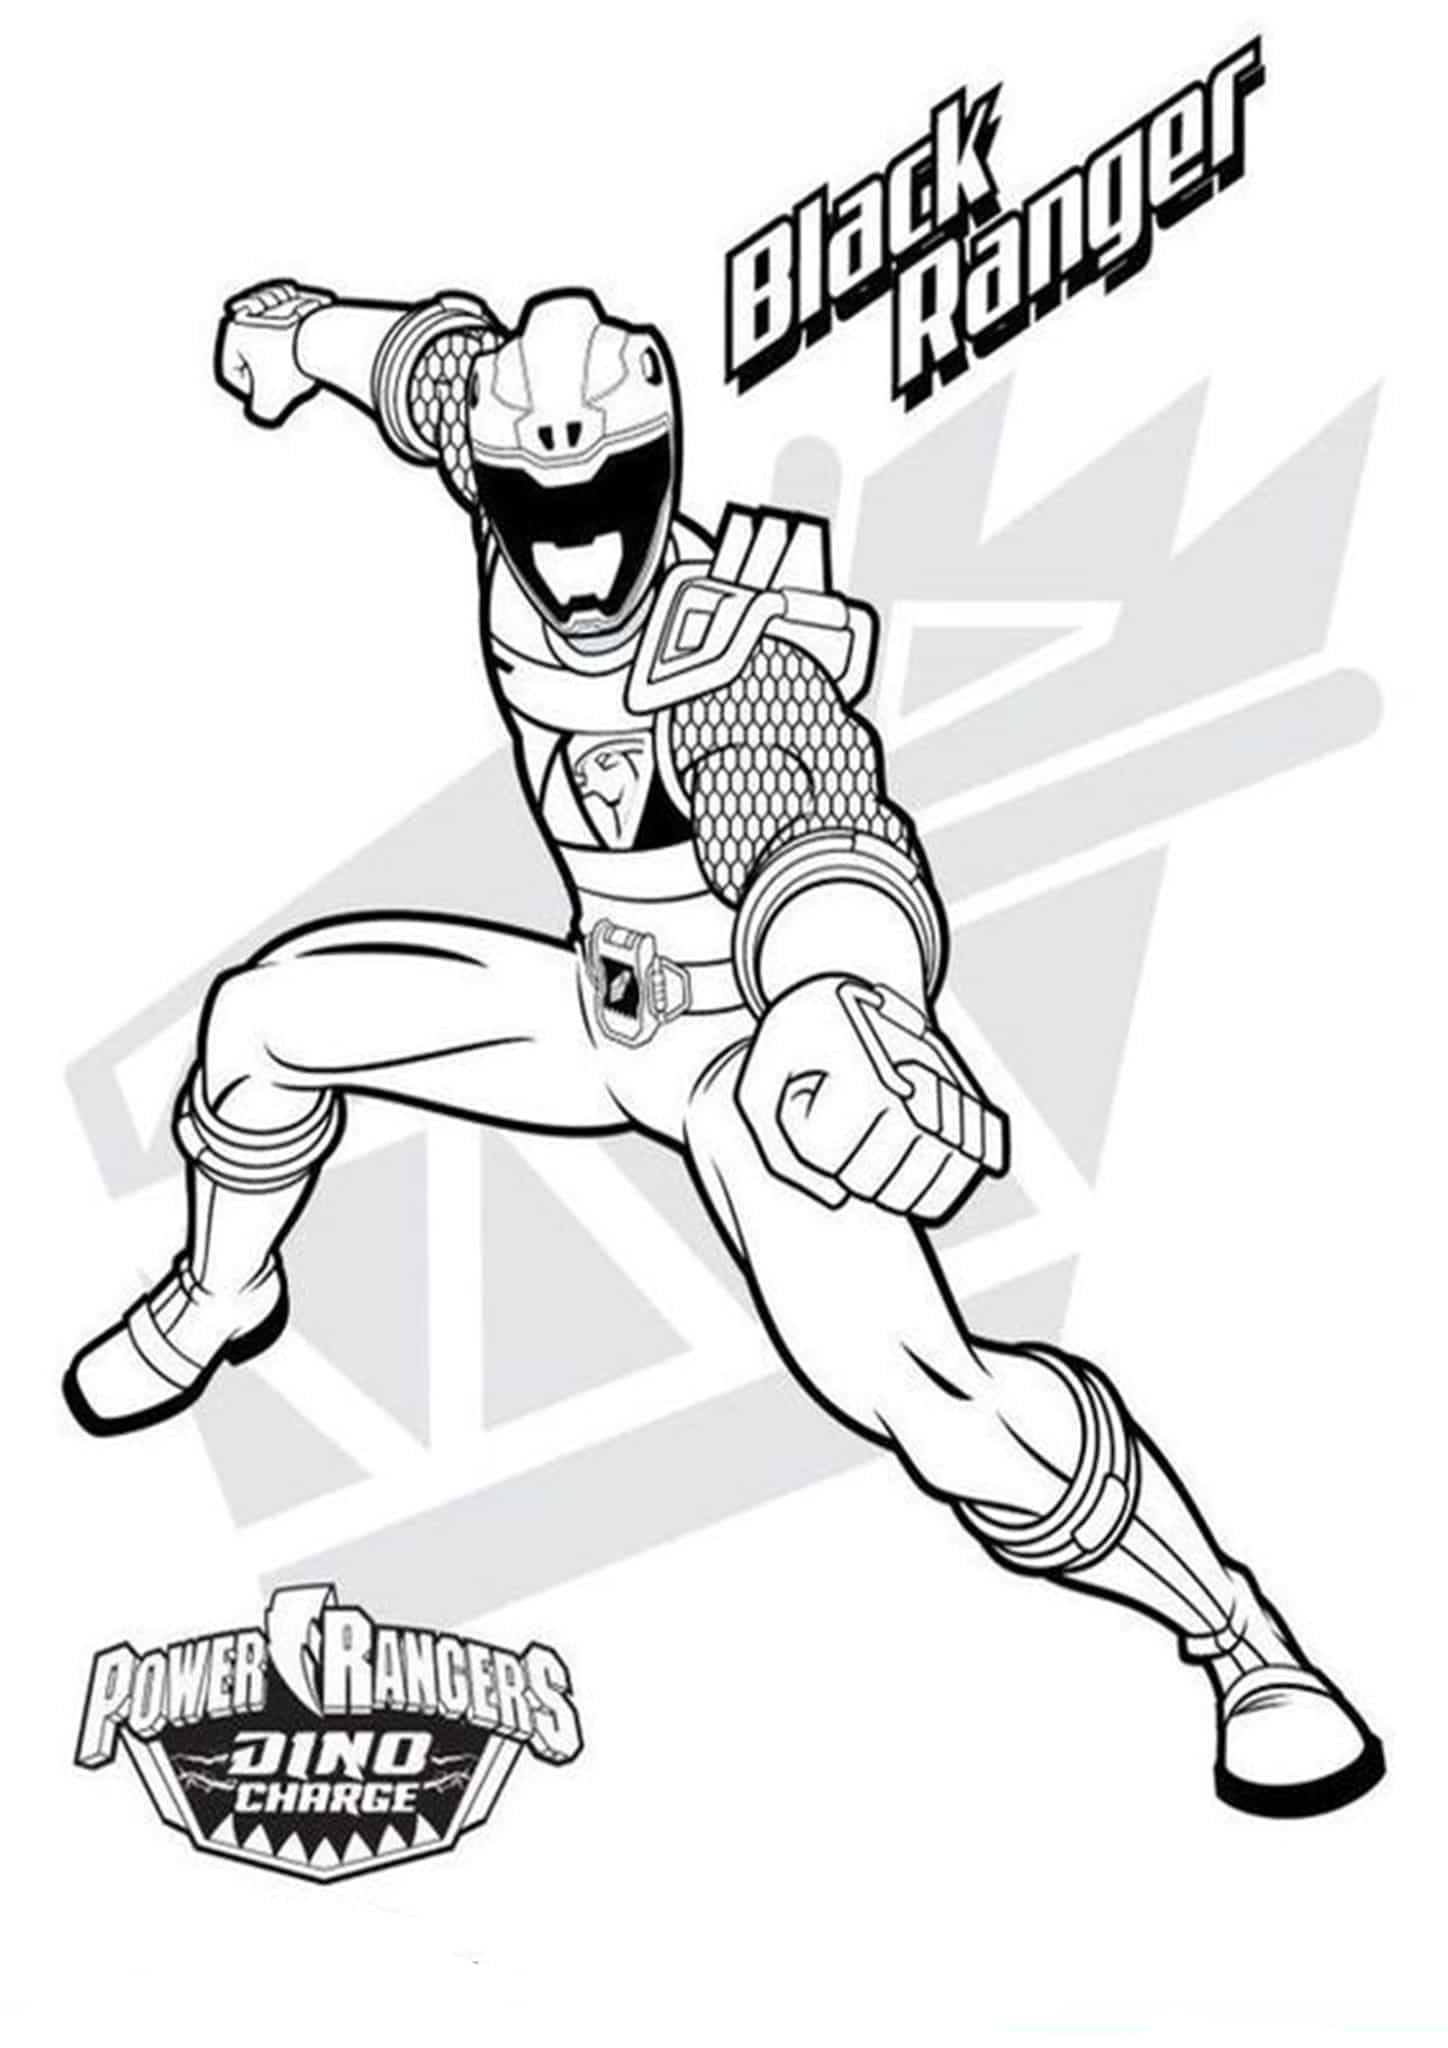 power ranger coloring pages free power rangers to print power rangers kids coloring pages power ranger free pages coloring